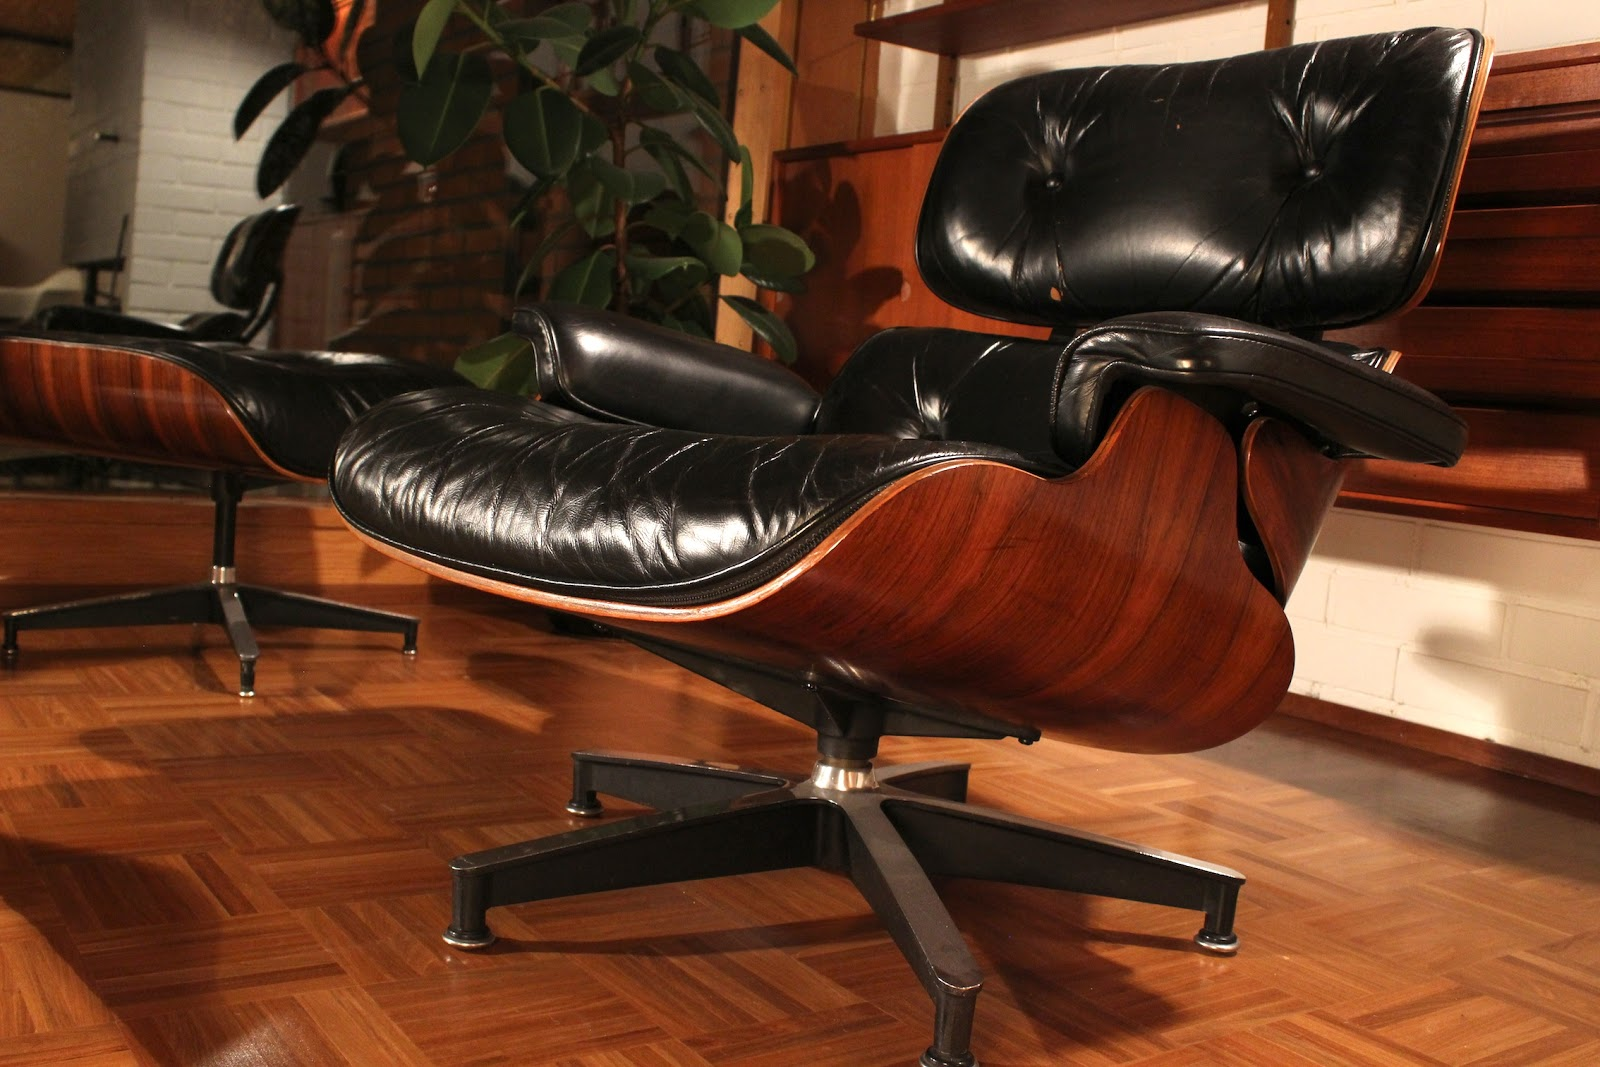 olive green eames lounge chair. Black Bedroom Furniture Sets. Home Design Ideas